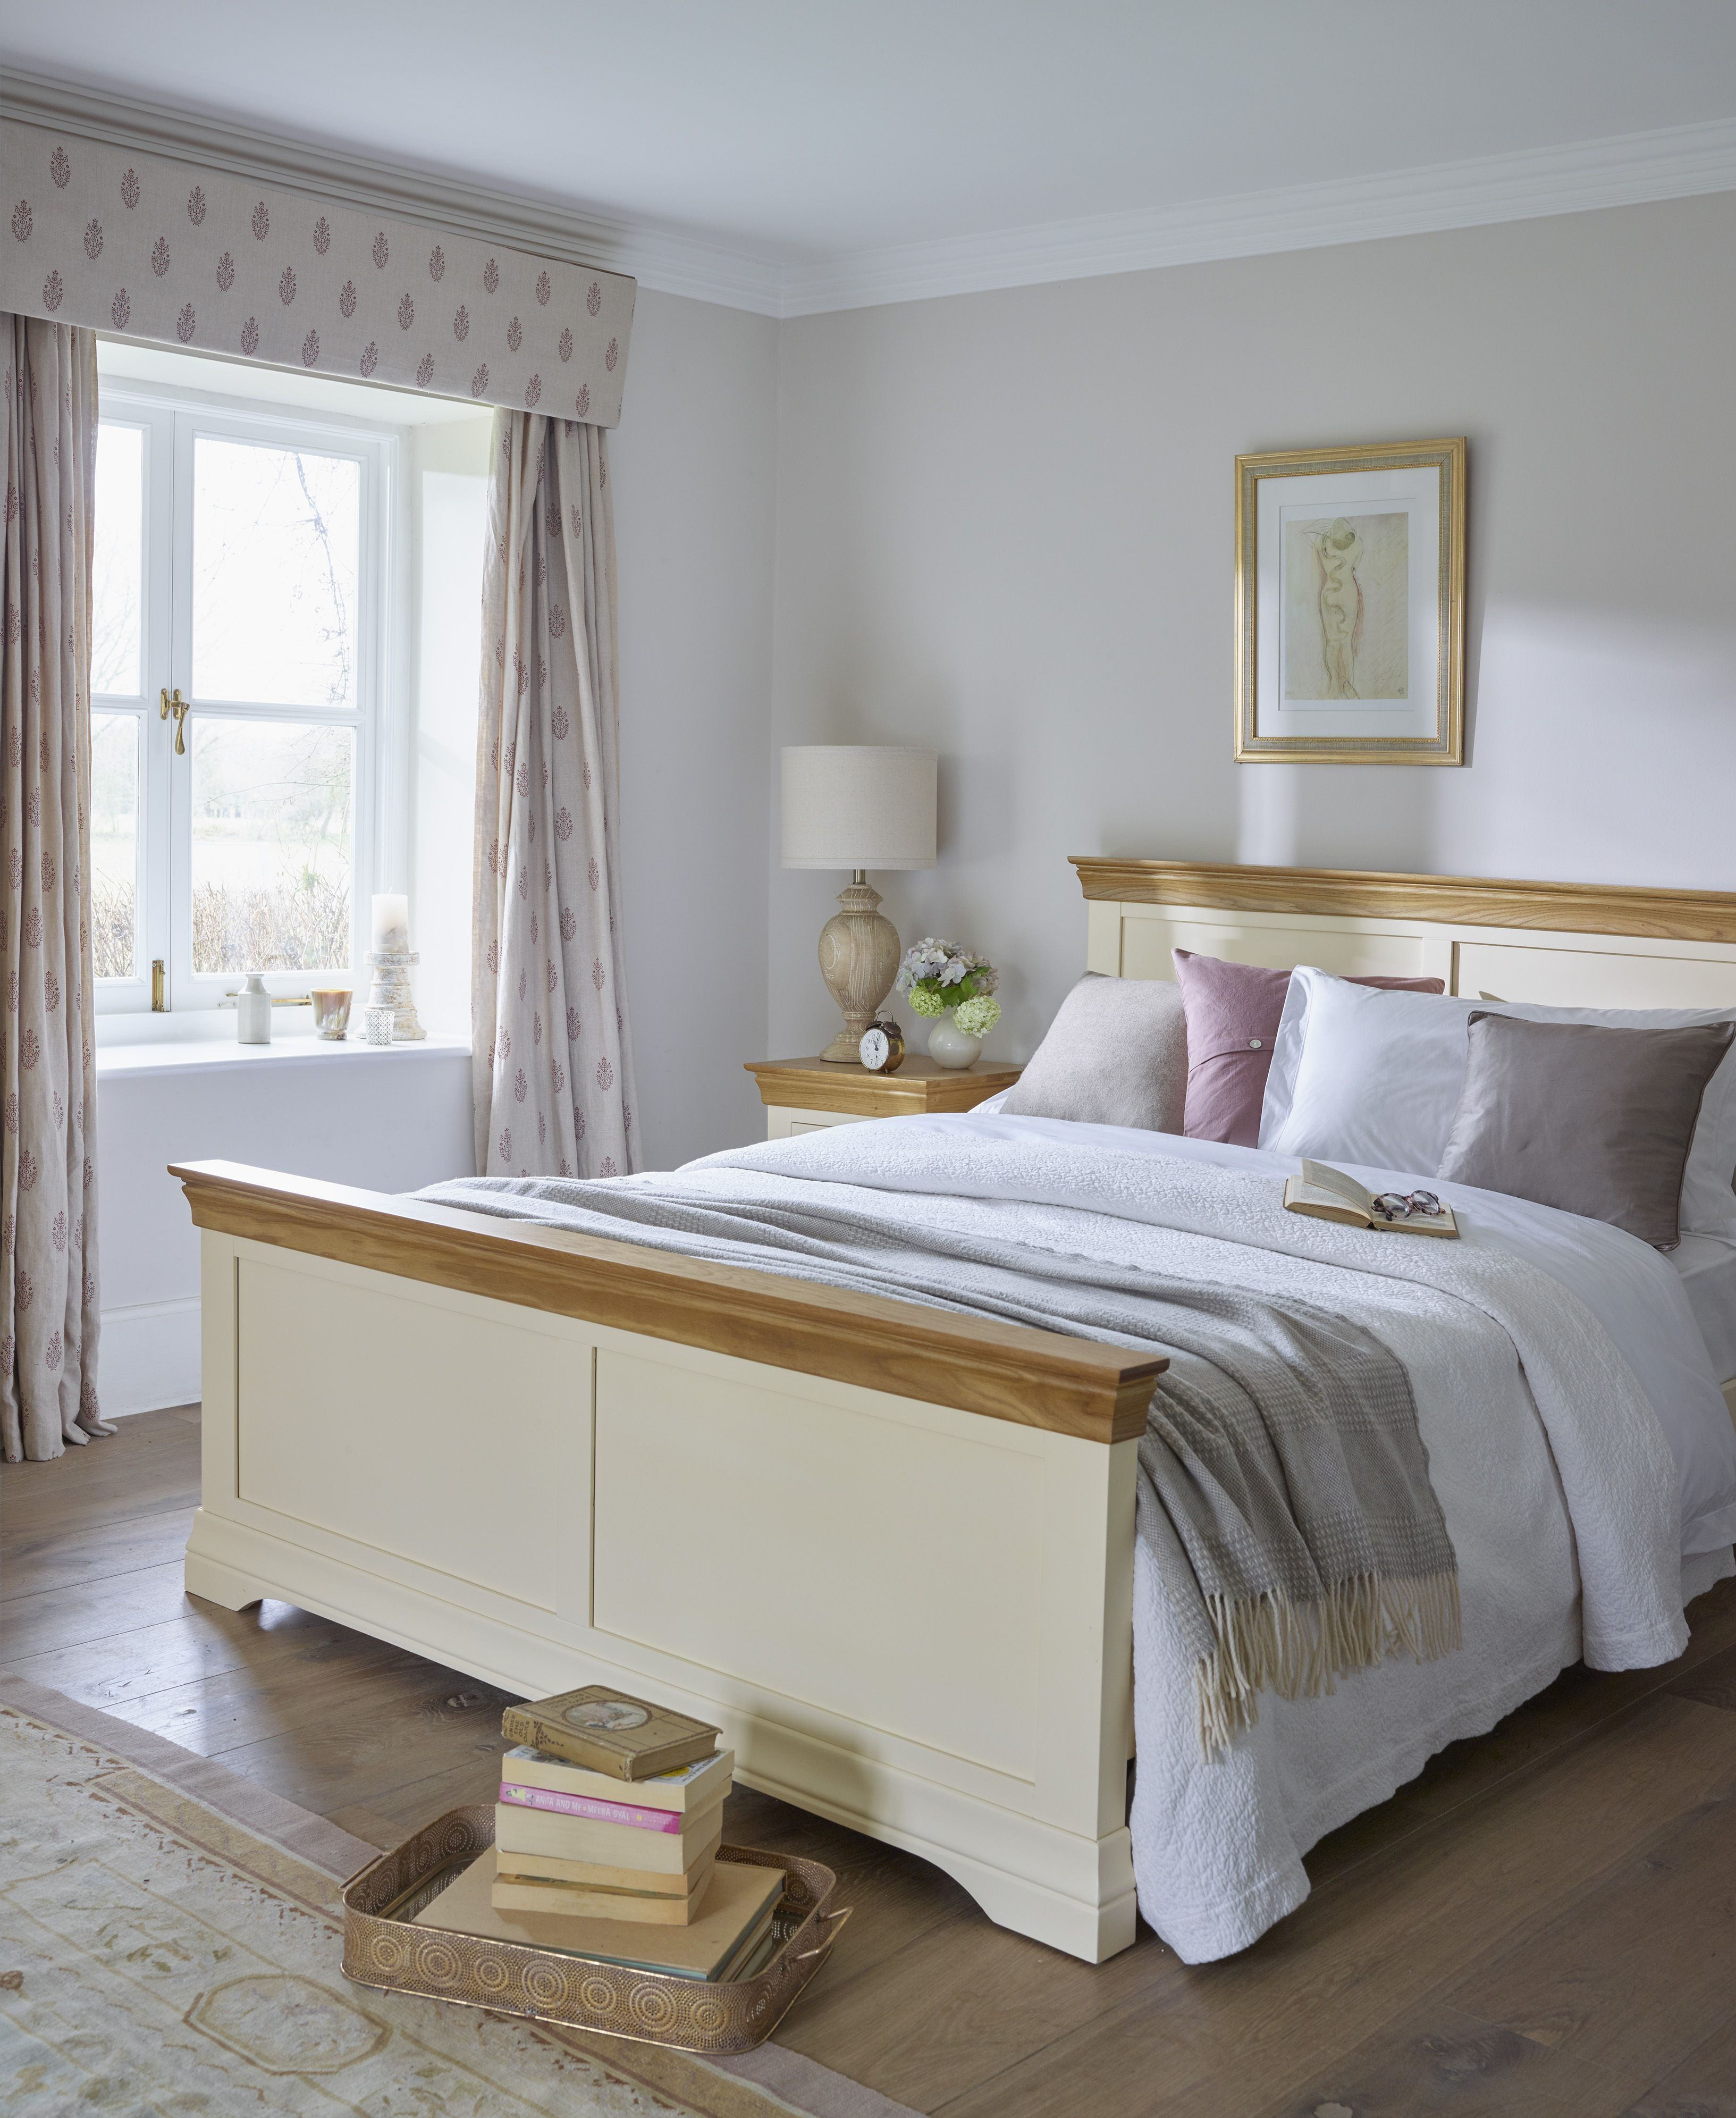 Color Scheme Goals With The Country Cottage Bedroom Furniture